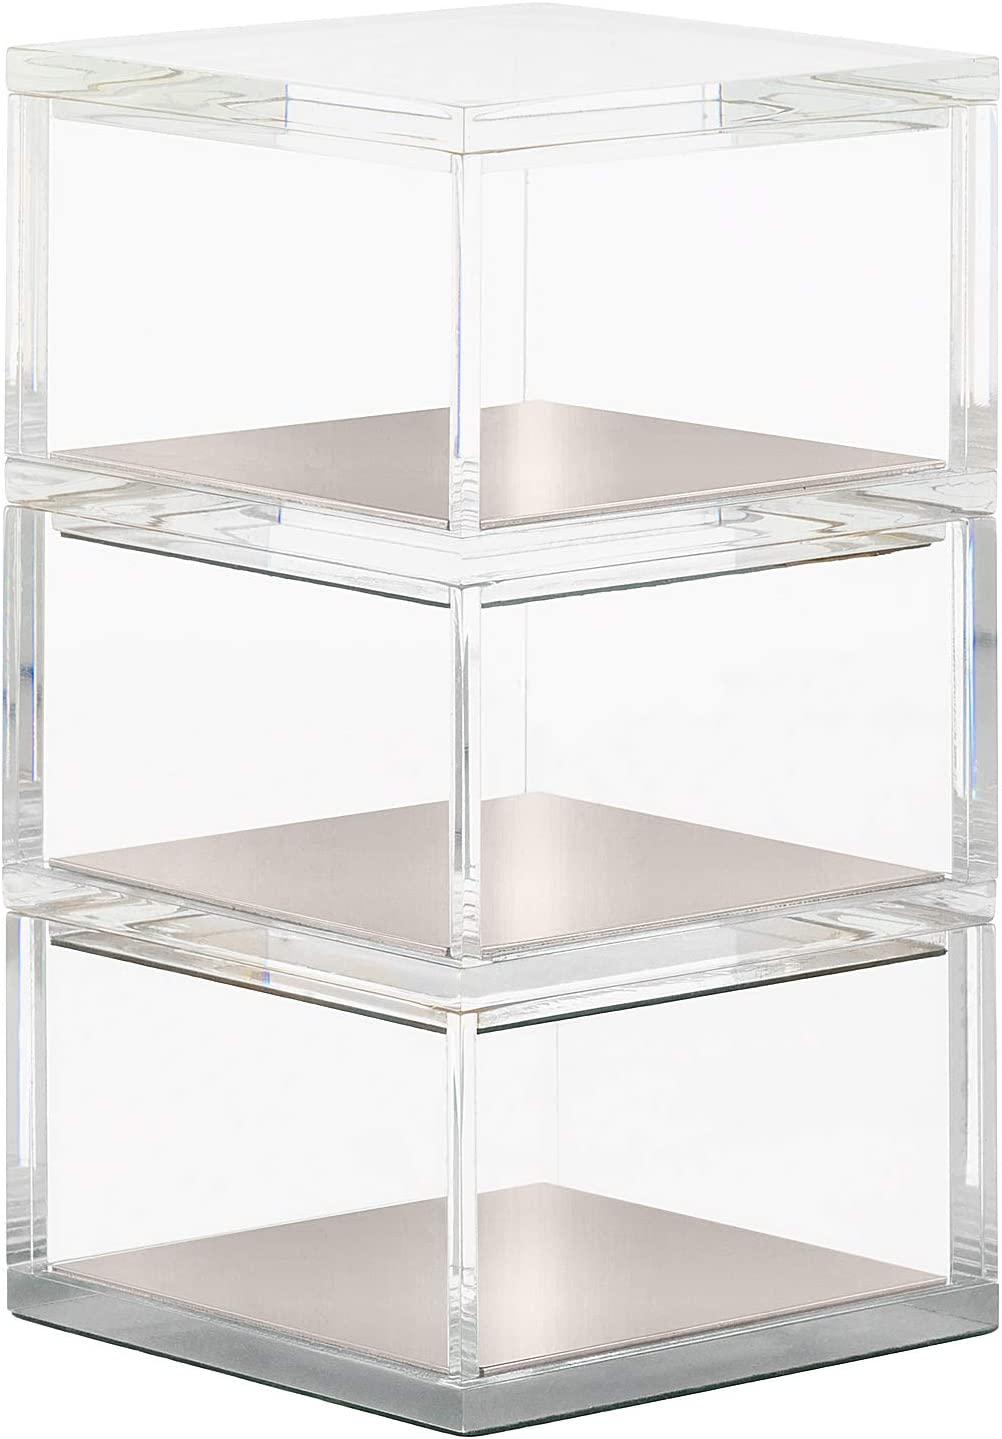 OfficeGoods Acrylic & Silver 3 Tier Organizer – Functional & Elegant Accessory Designed for Your Desk Office or Home – A Great Spot for All Your Little Bits (Silver/Square)